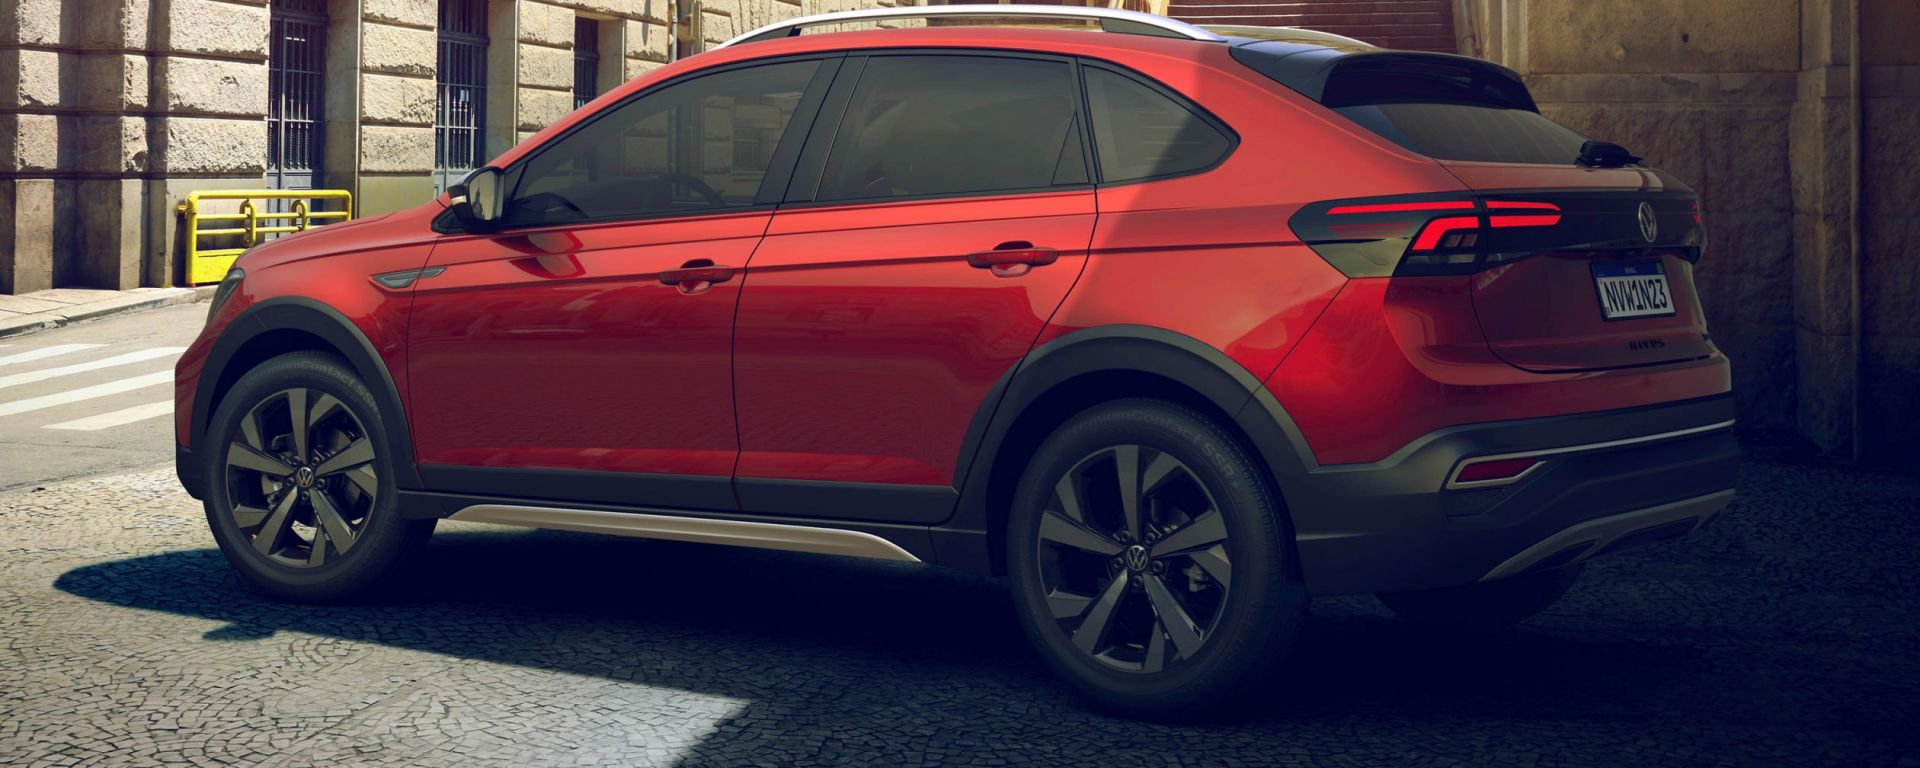 Volkswagen Nivus, alias T-Cross coupé